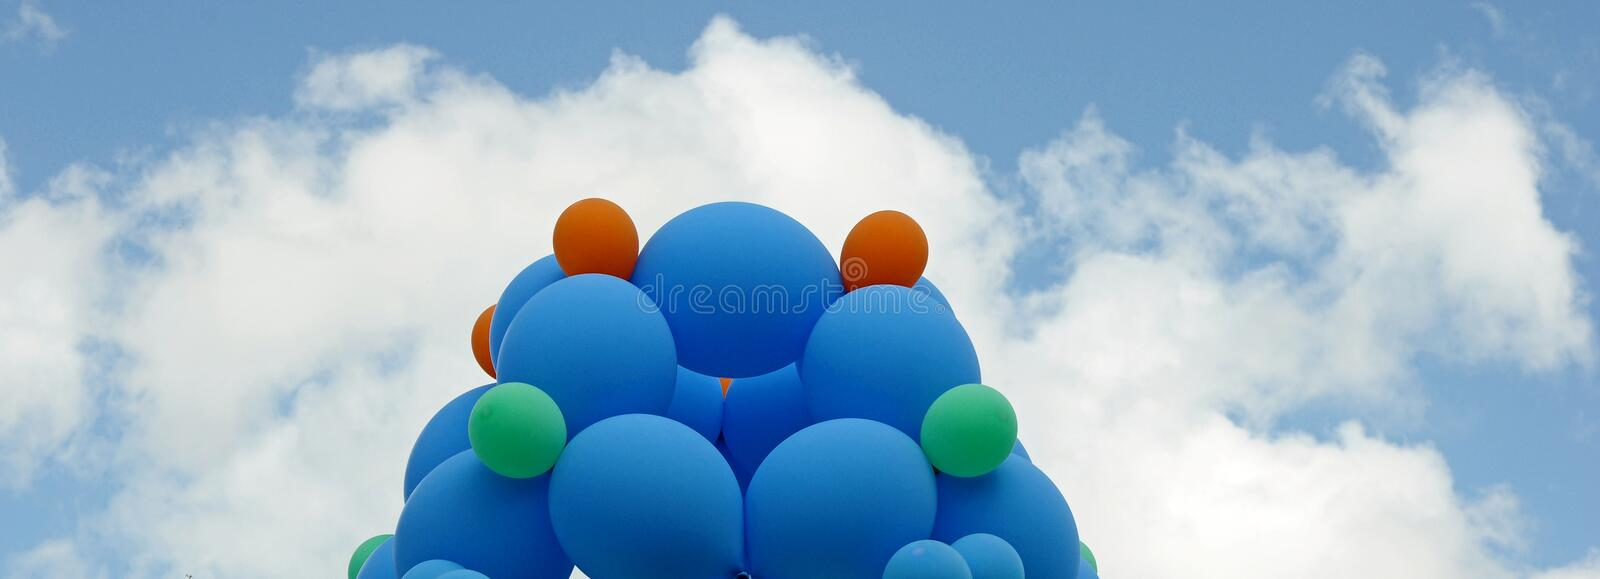 Download Colorful balloons stock image. Image of baloon, bunch - 25681611